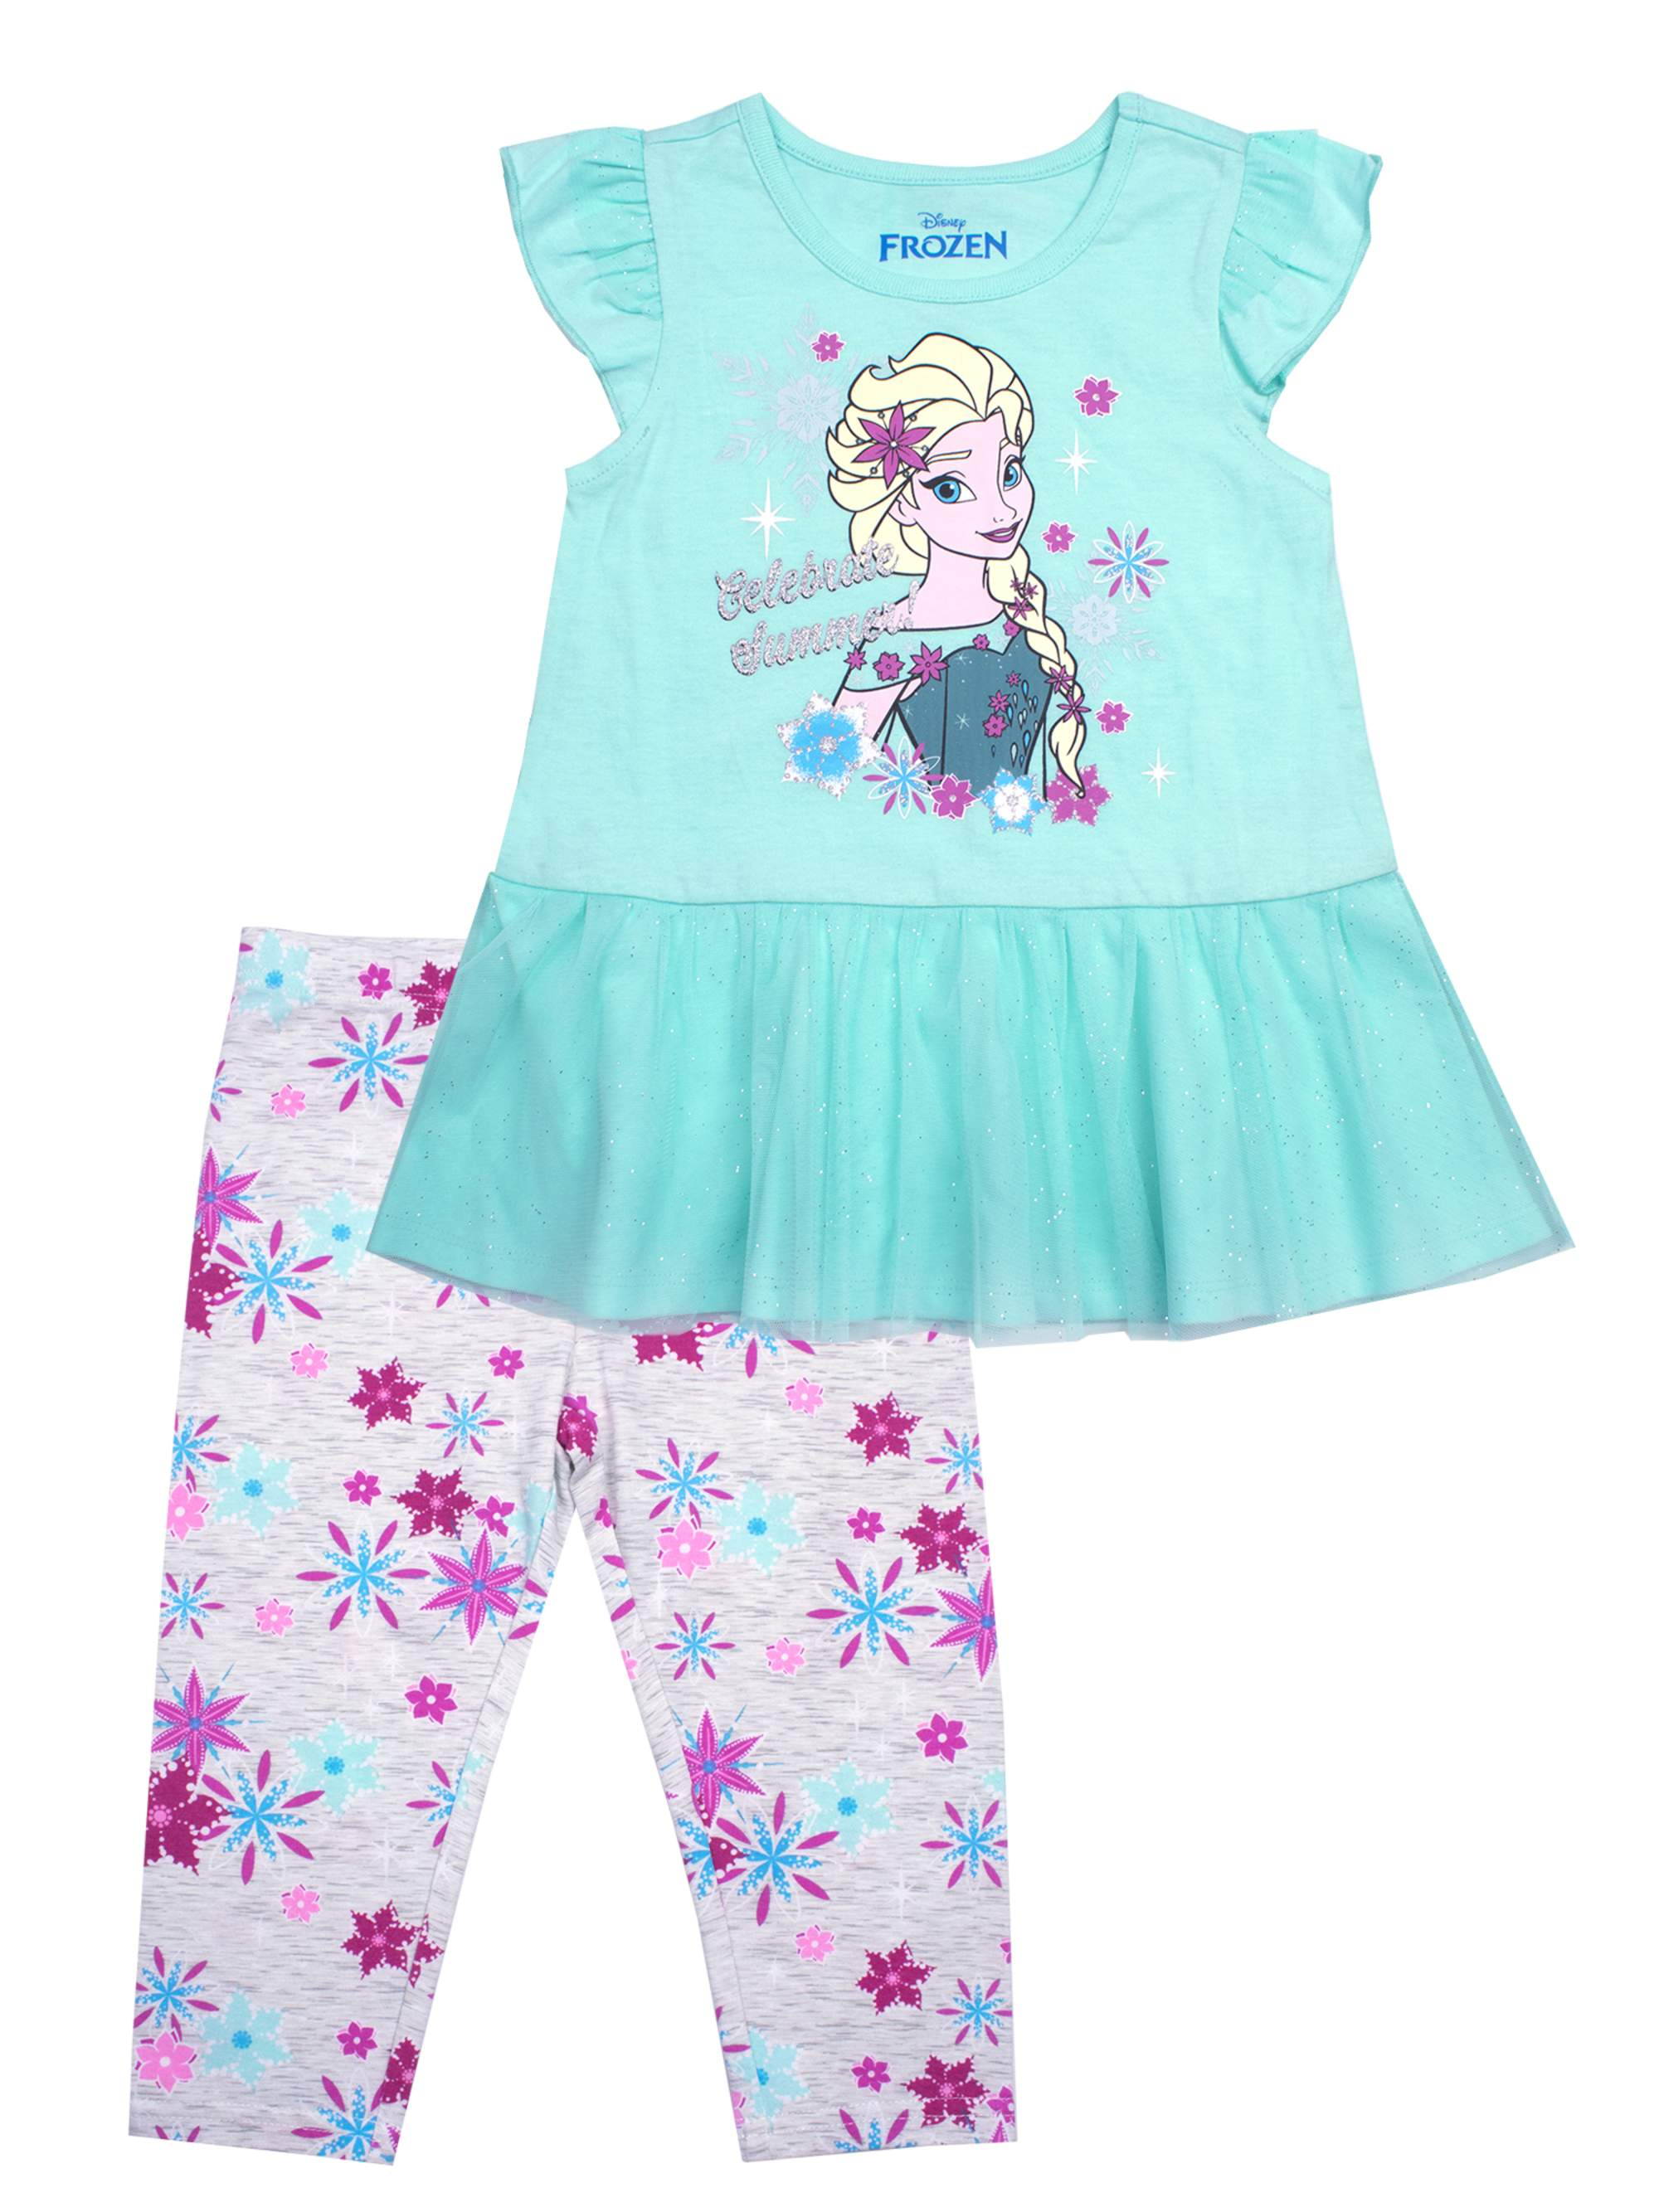 Elsa Tulle Hem Top and Legging, 2-Piece Outfit Set (Little Girls)